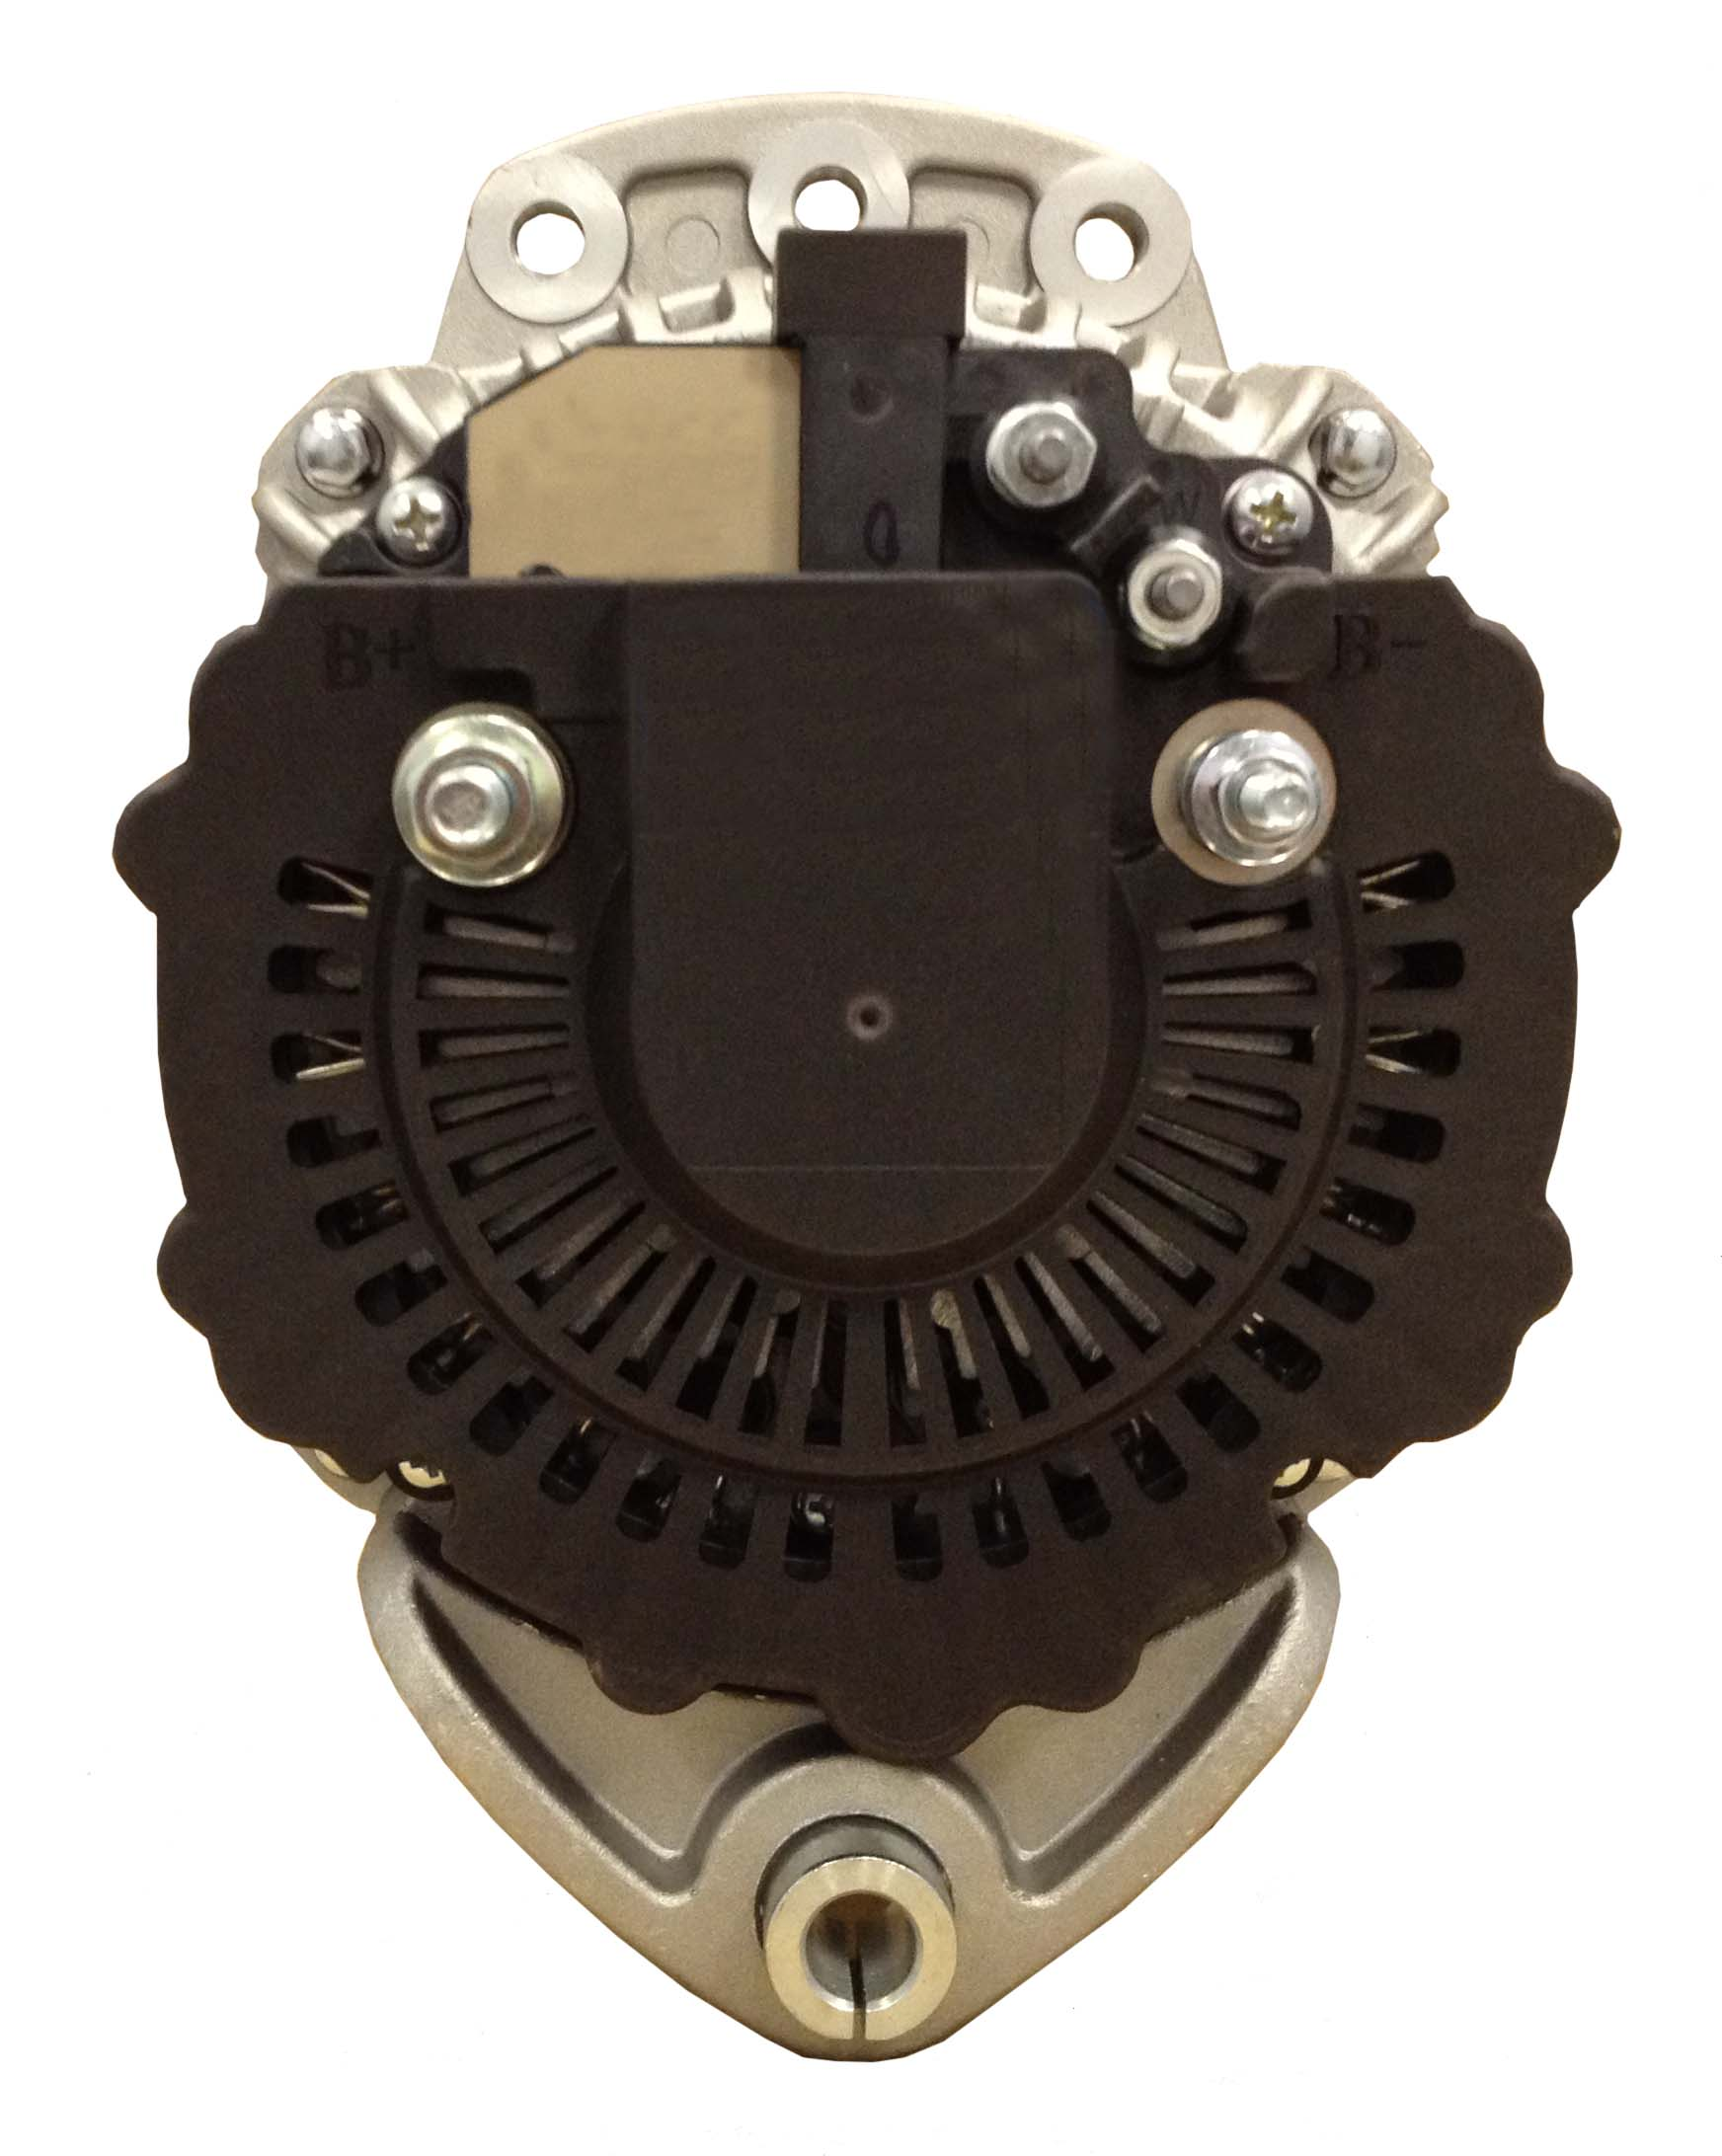 AVI168A3021_Prestolite Leece Neville New Alternator AVI Series J180 Mount type 24V 150A